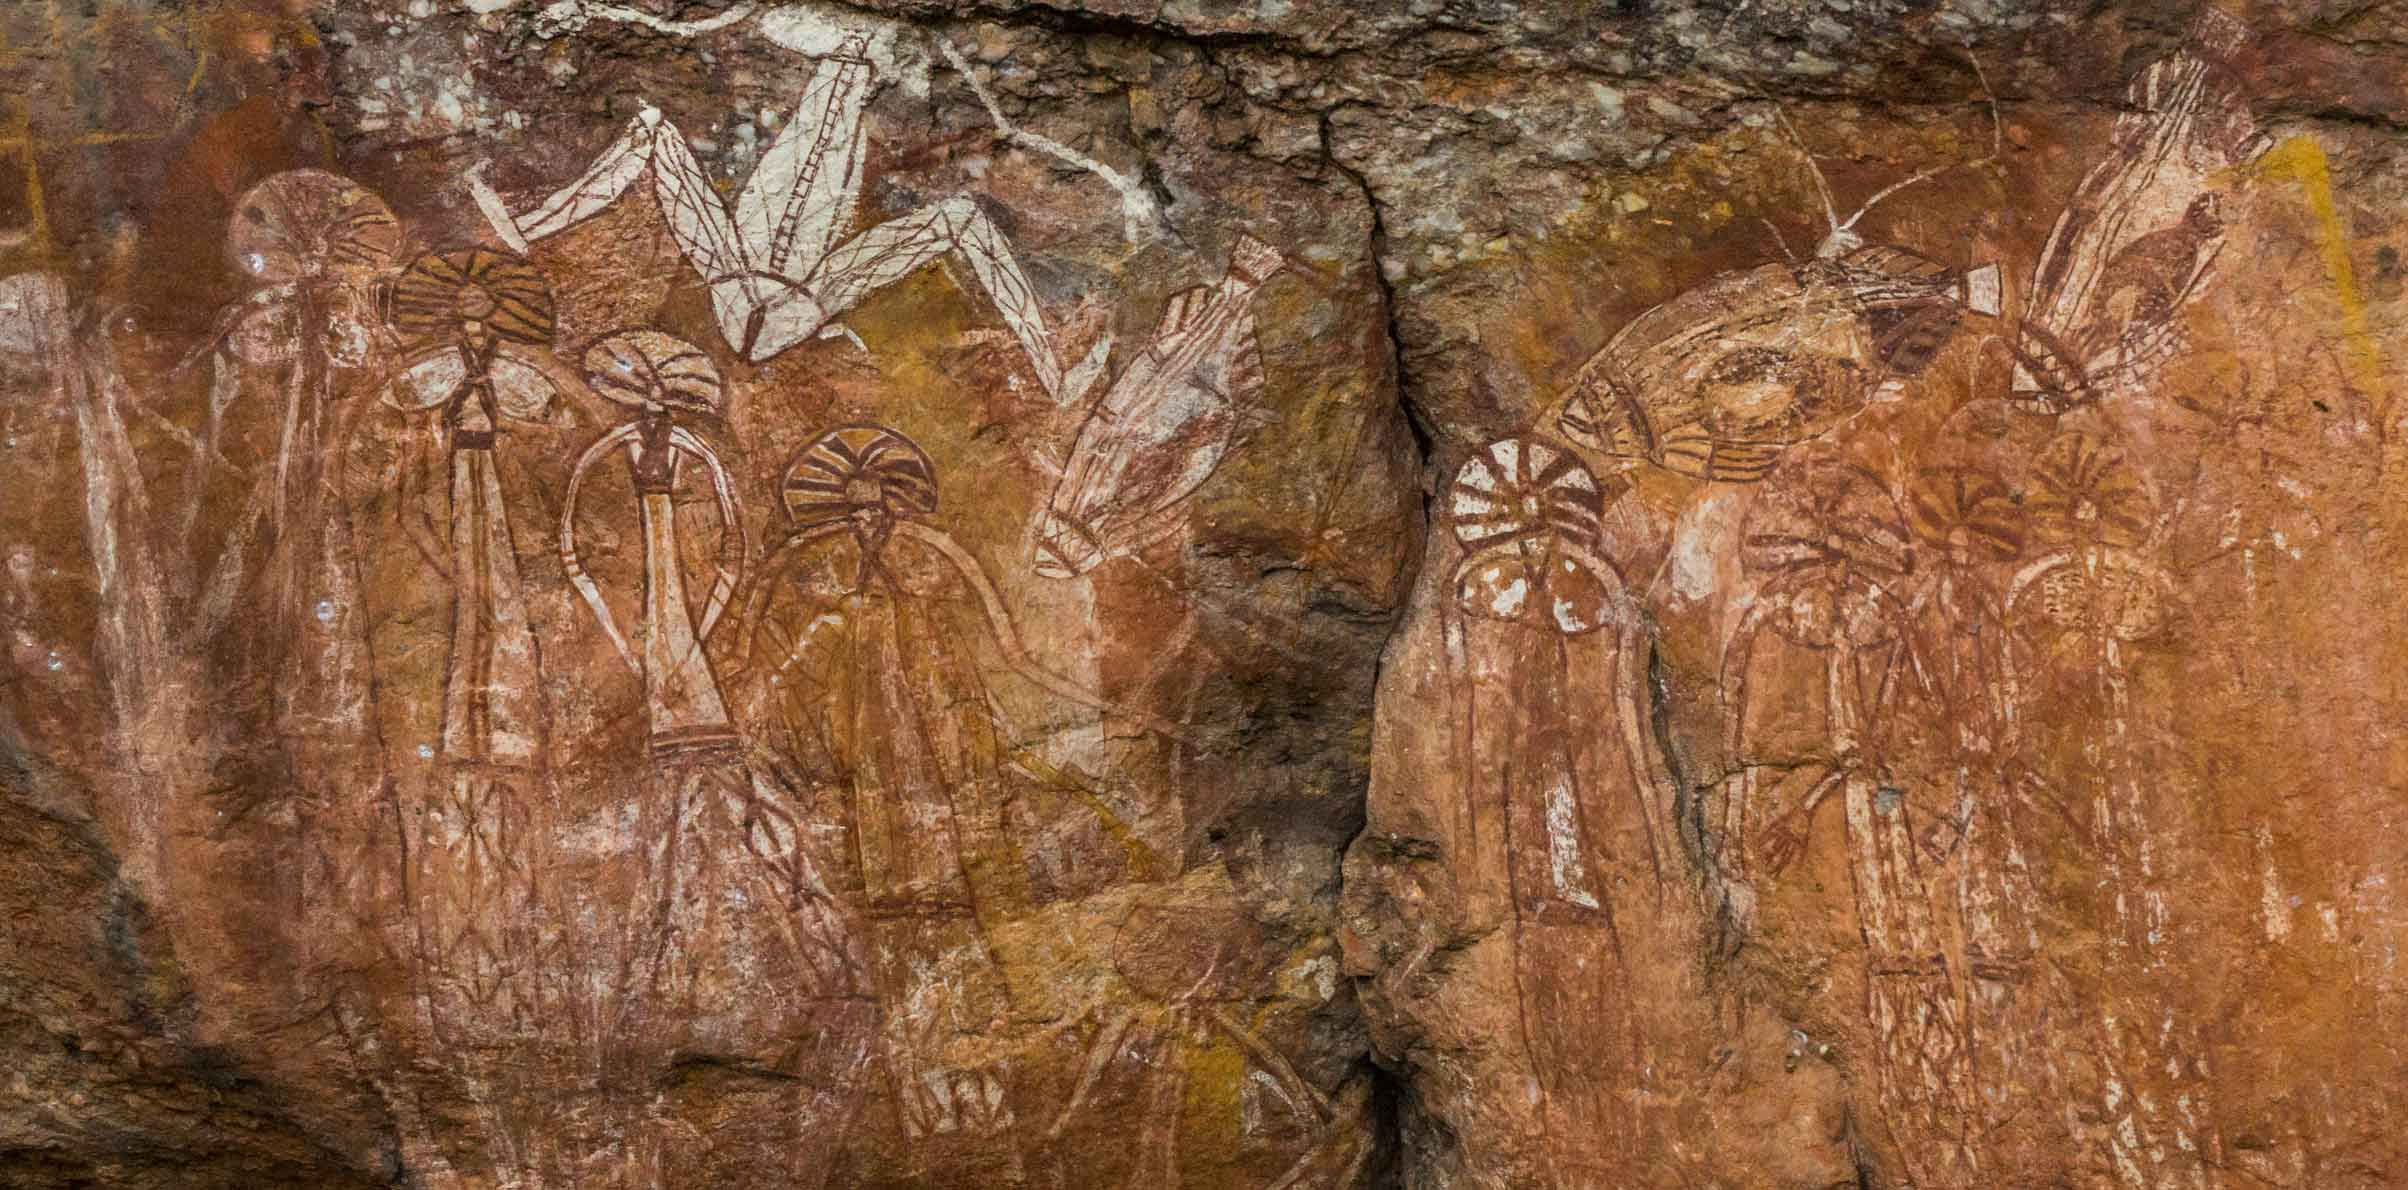 Indigenous rock art